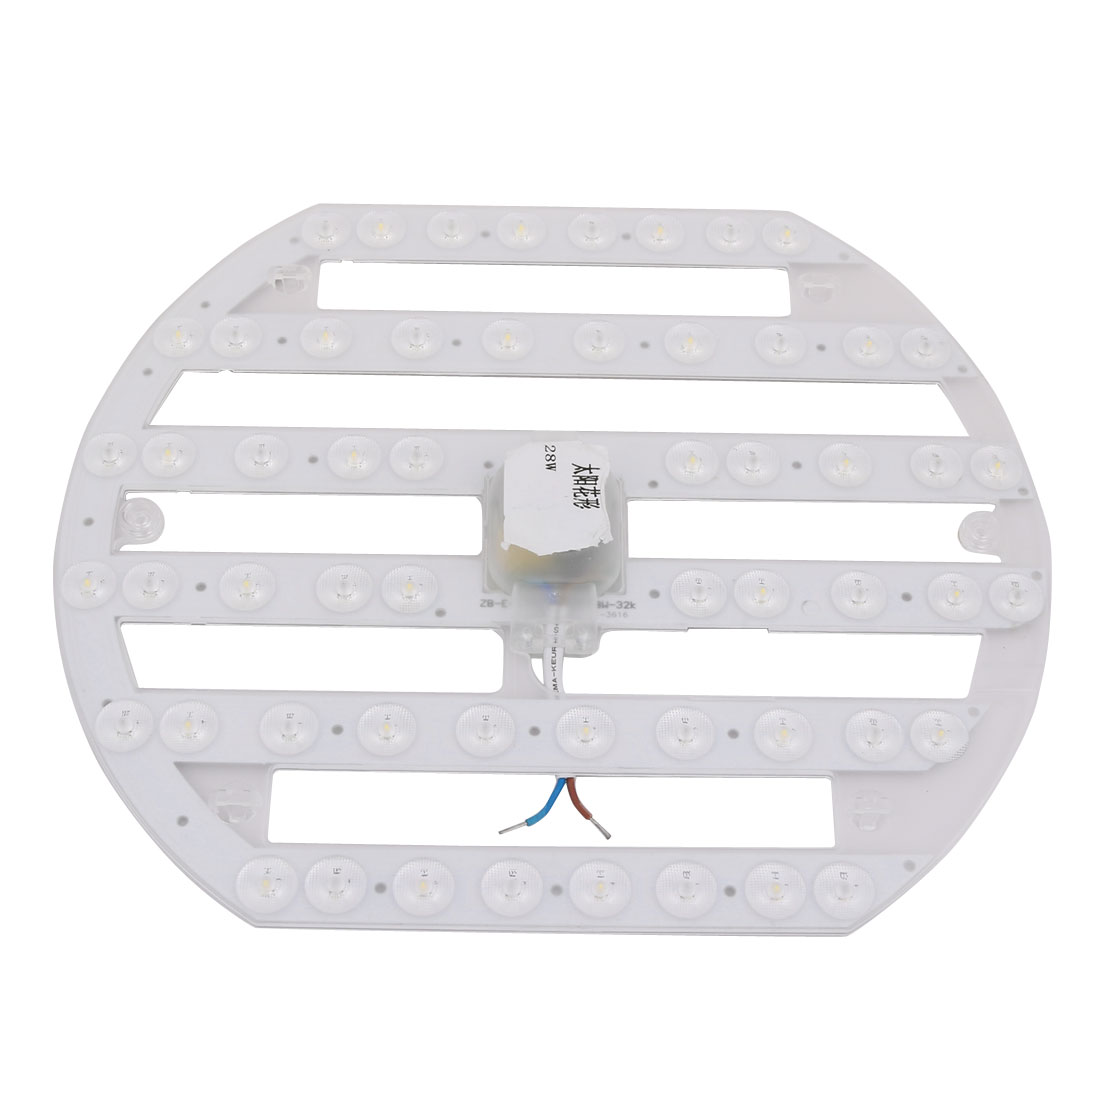 AC 185V-265V 28W LED Ceiling Optical Lens Module Light Board 28-LED 6500K